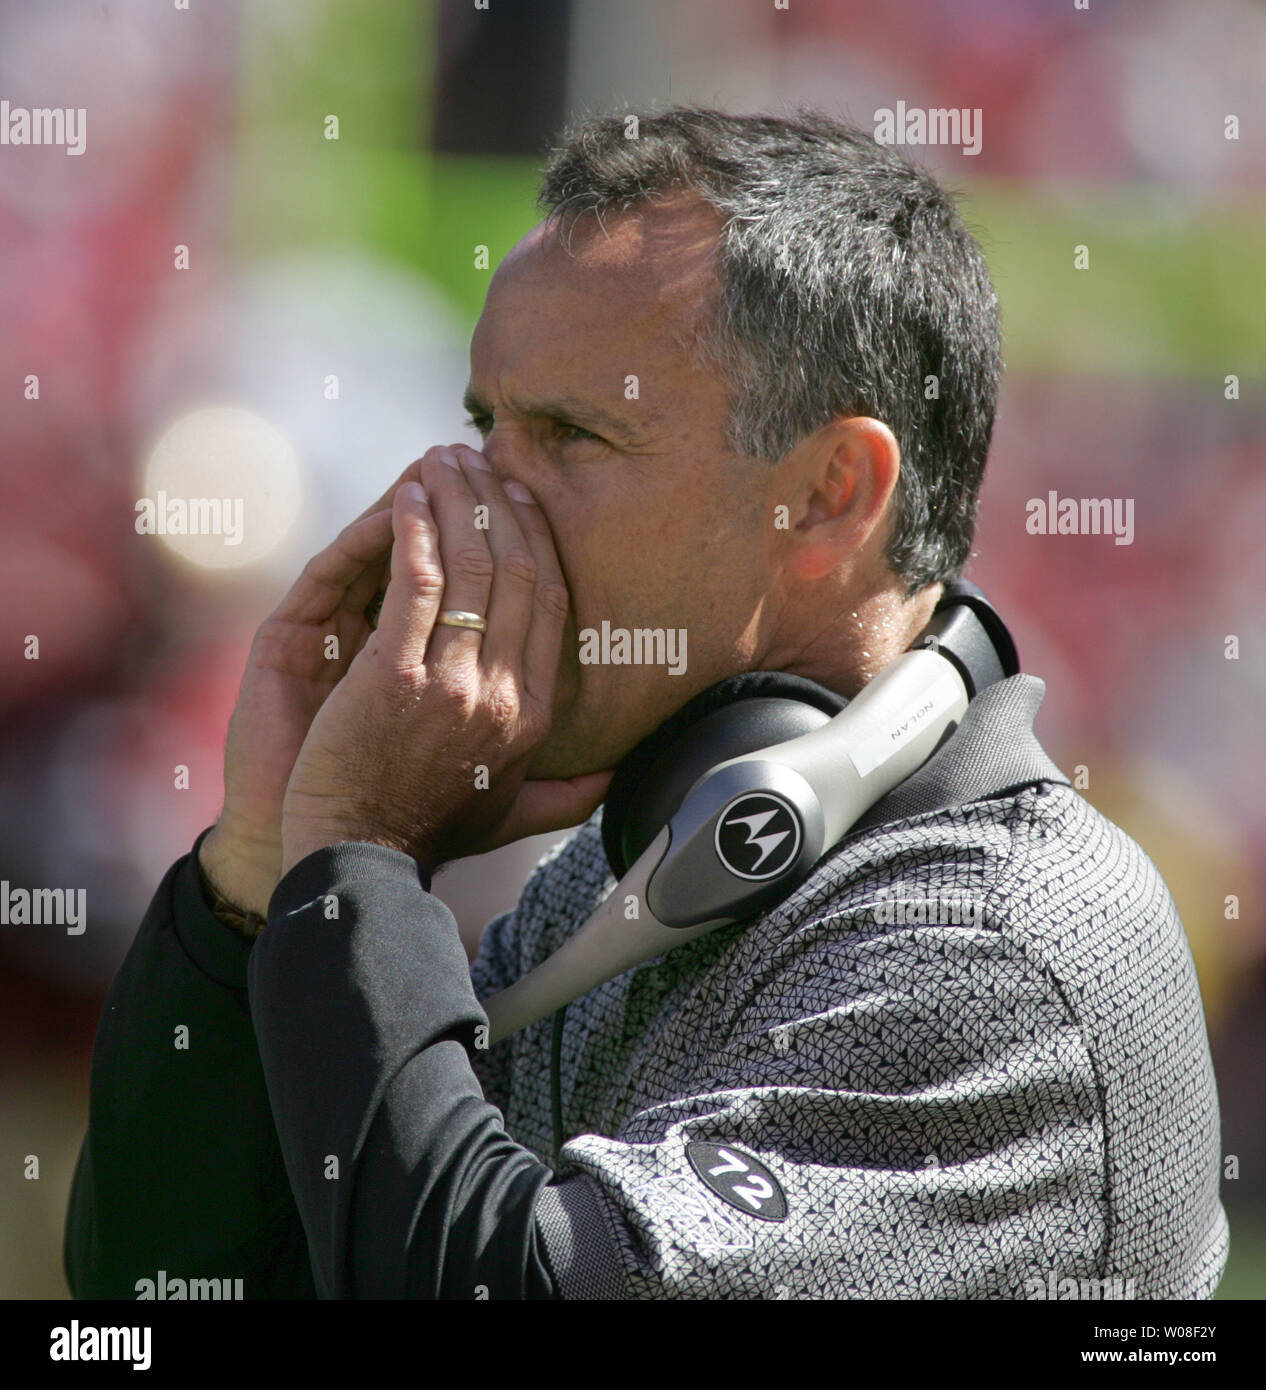 San Francisco 49ers Head Coach Mike Nolan yells instructions as he wins his 49er debut against the St. Louis Rams at Monster Stadium in San Francisco on September 11, 2005.  (UPI Photo/Terry Schmitt) - Stock Image